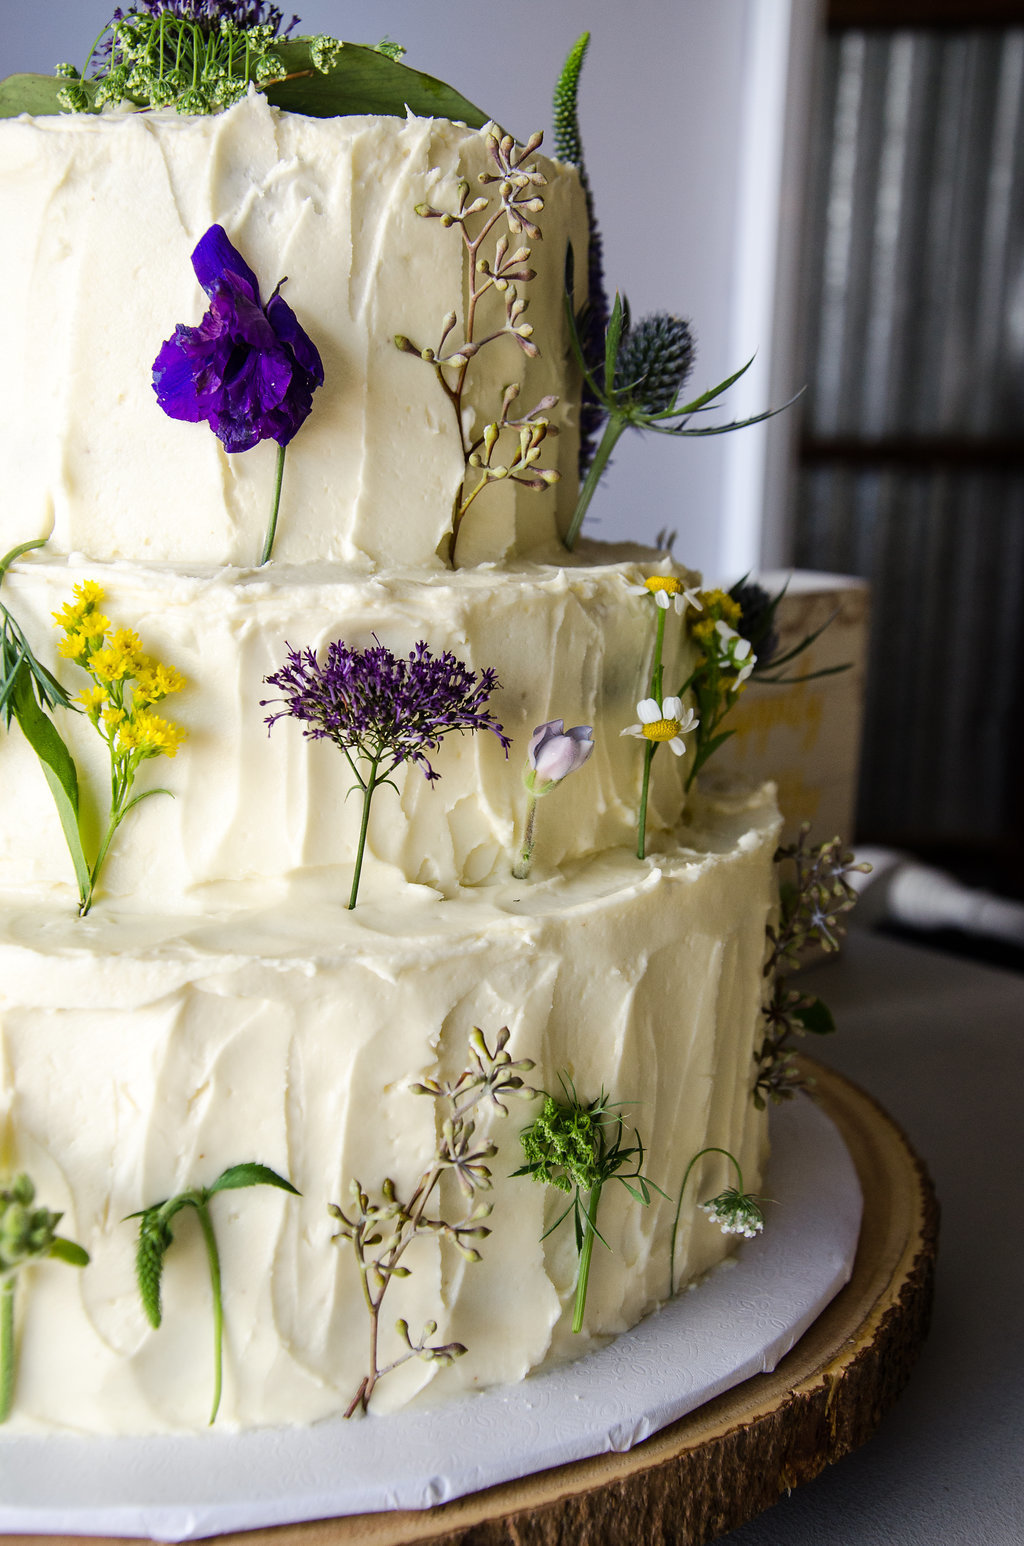 Monica_Relyea_Events_Dawn_Honsky_Photography_Nostrano_vineyard_barn_cake2